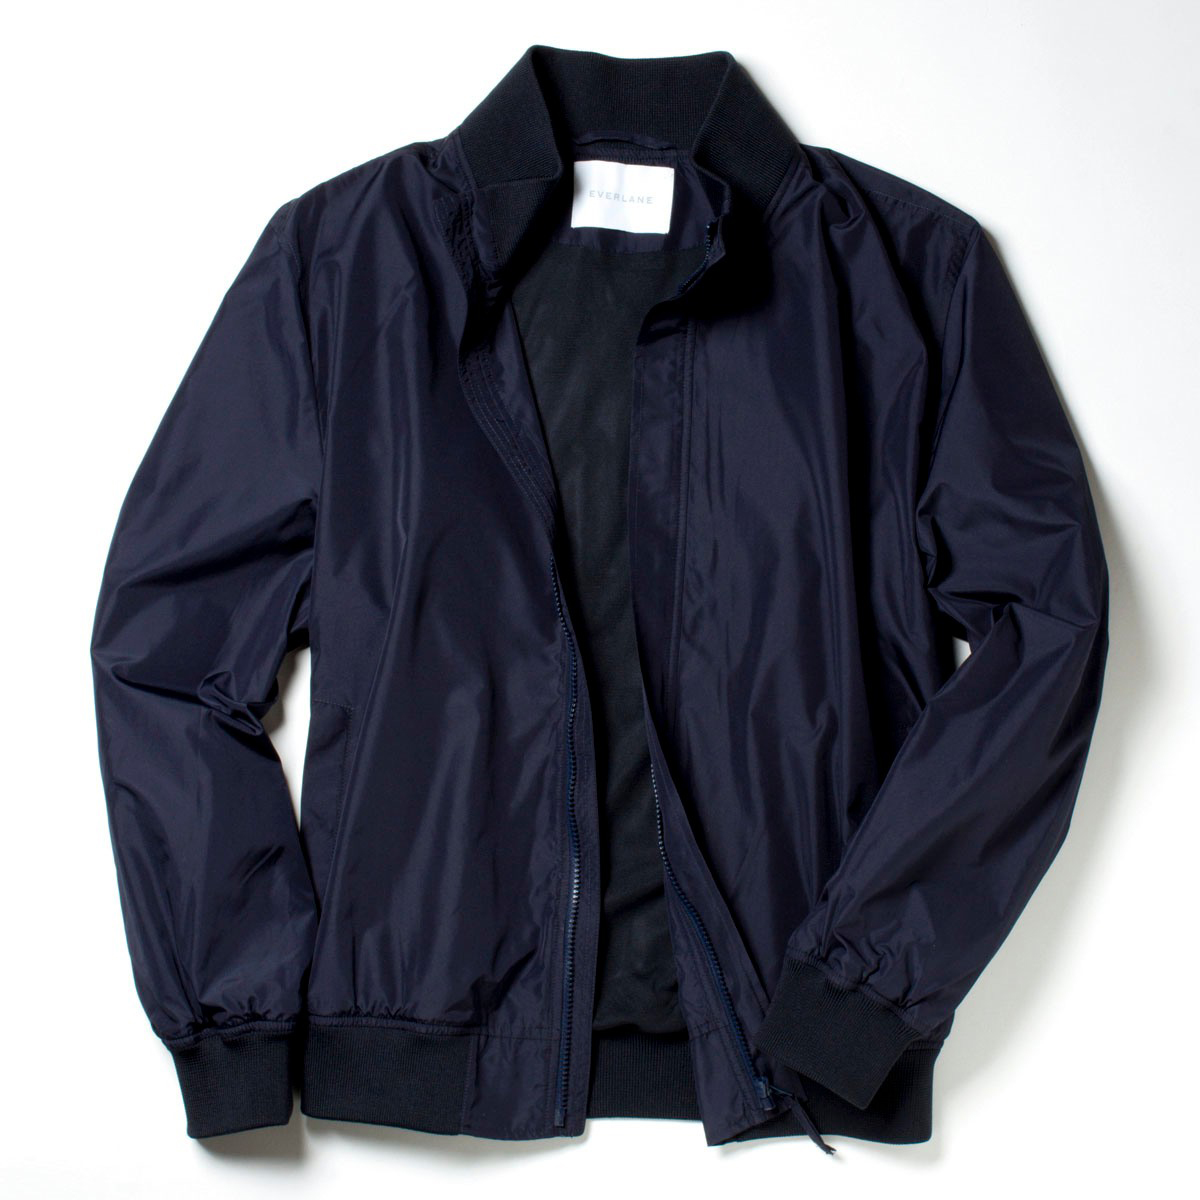 everlane-lightweight-bomber-jacket-1